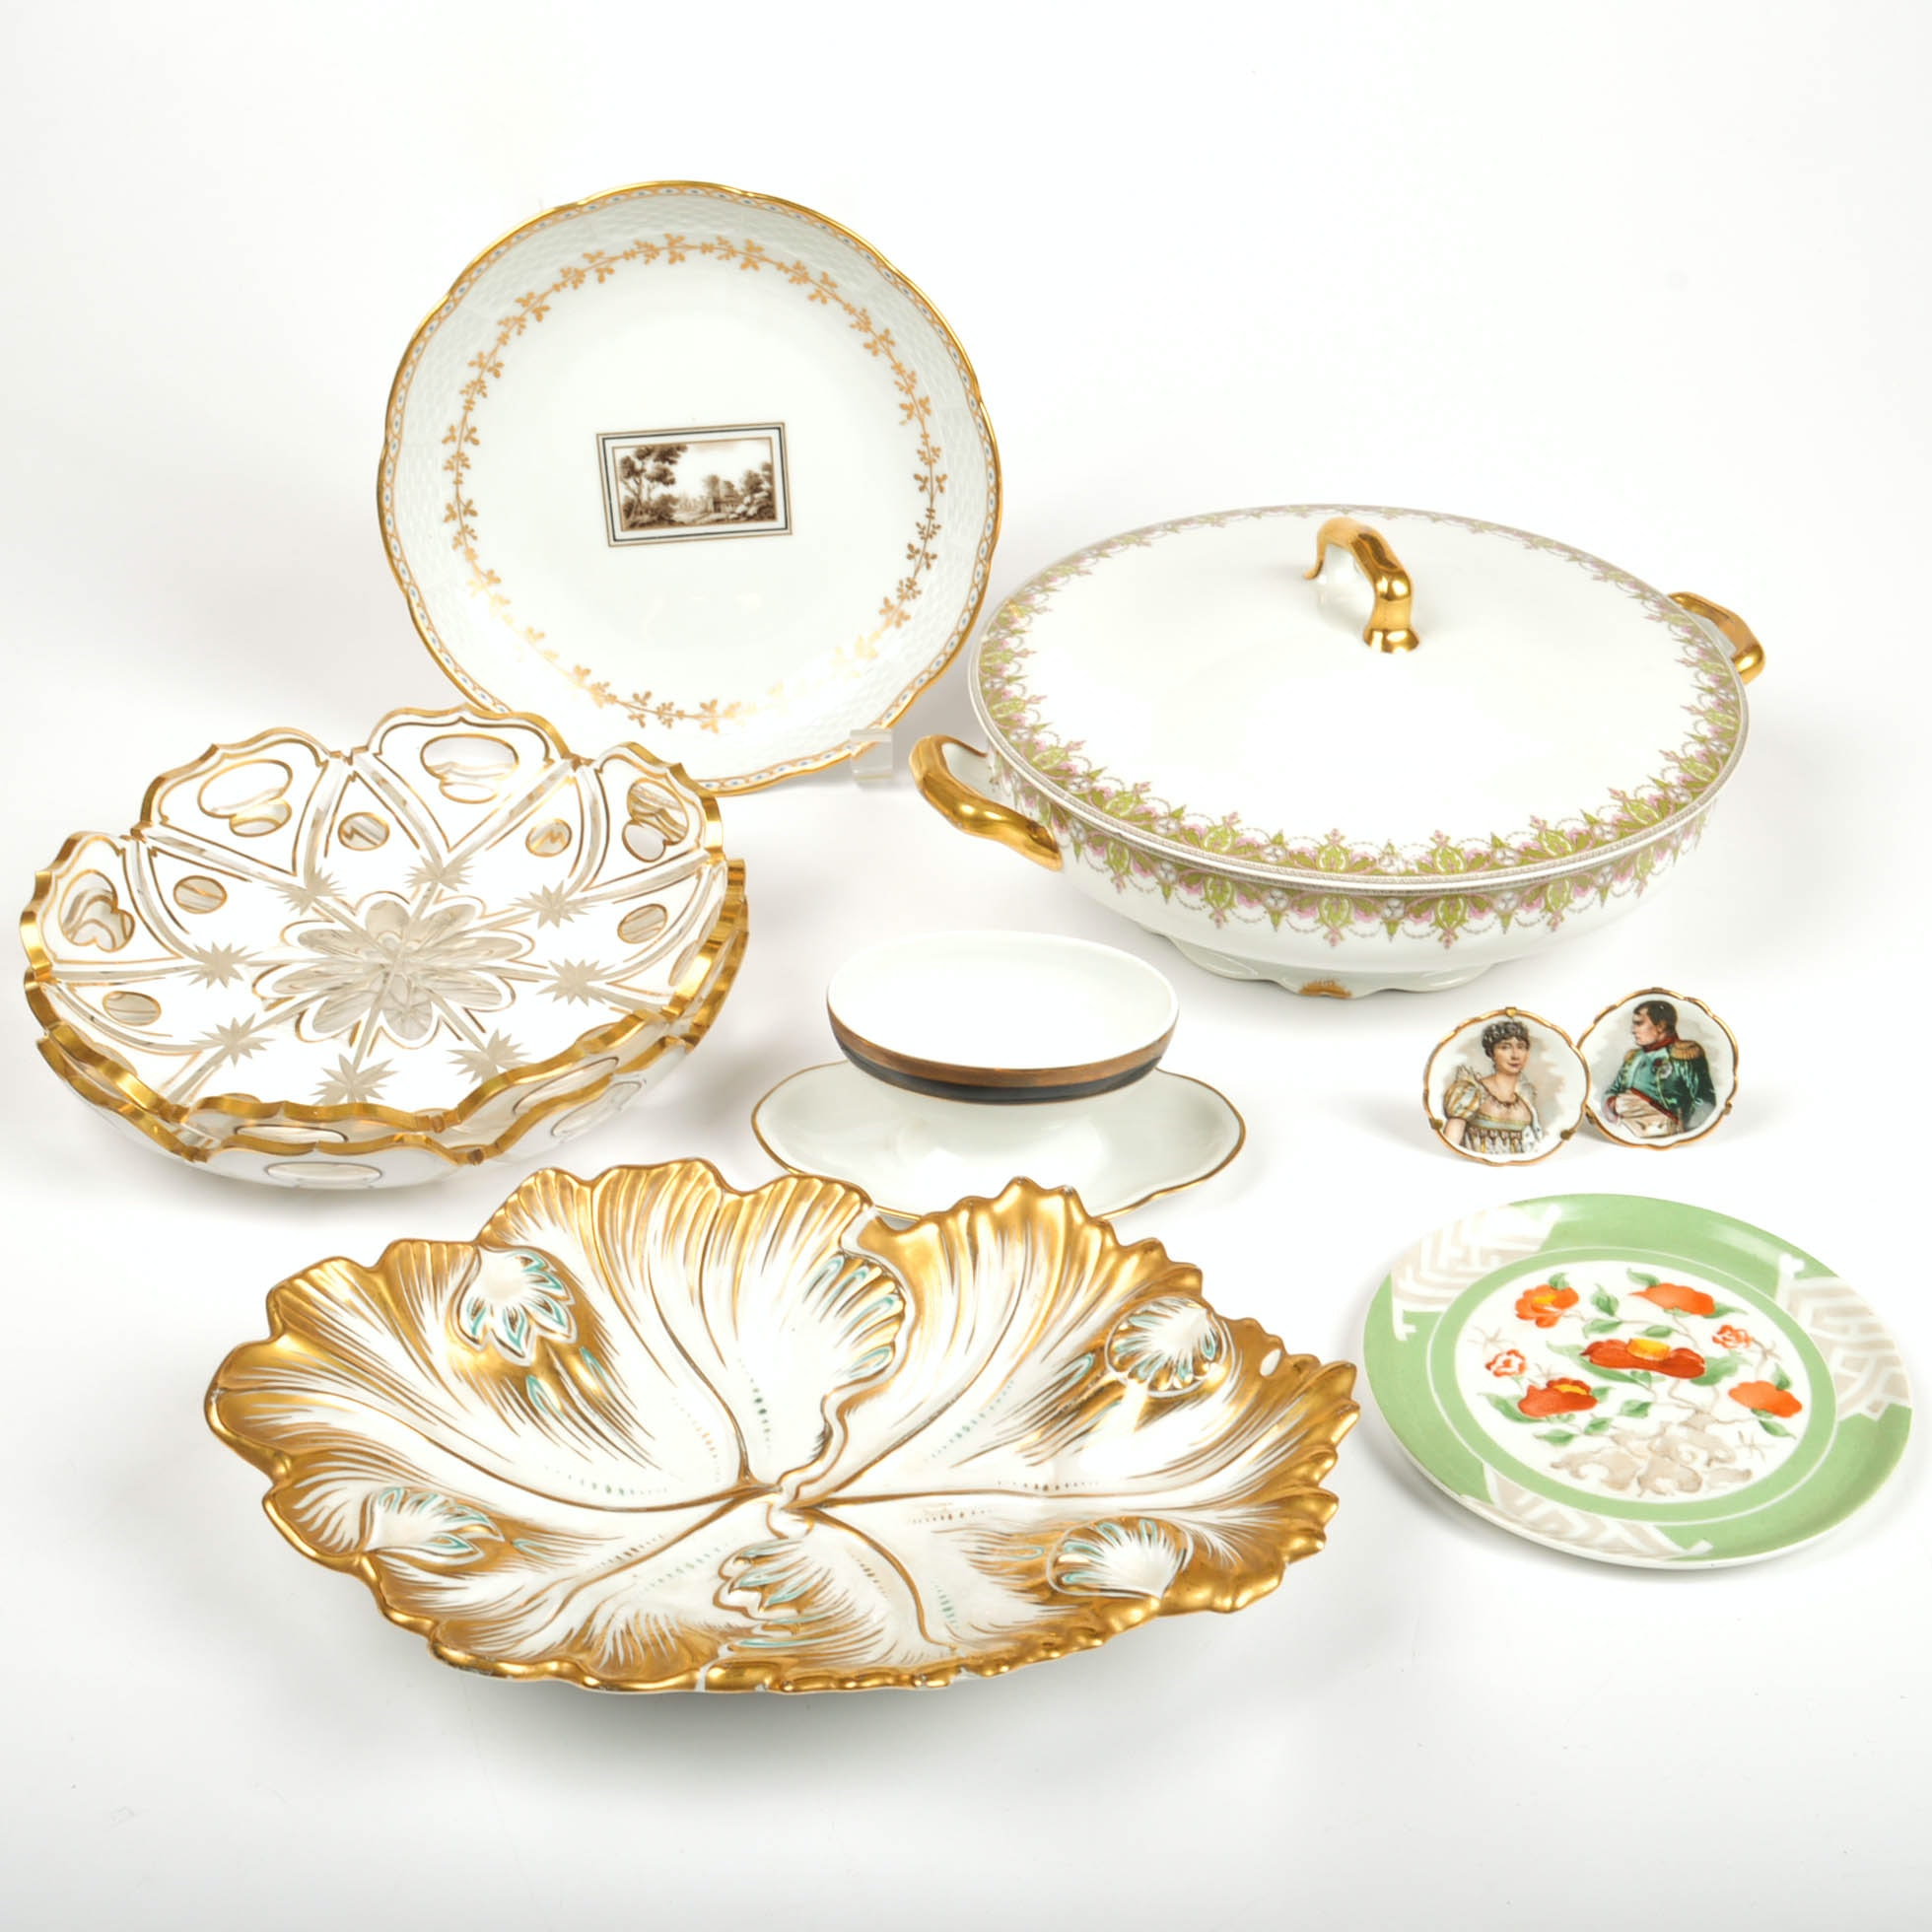 White China, Porcelain and Glass Decor including Tiffany and Limoges